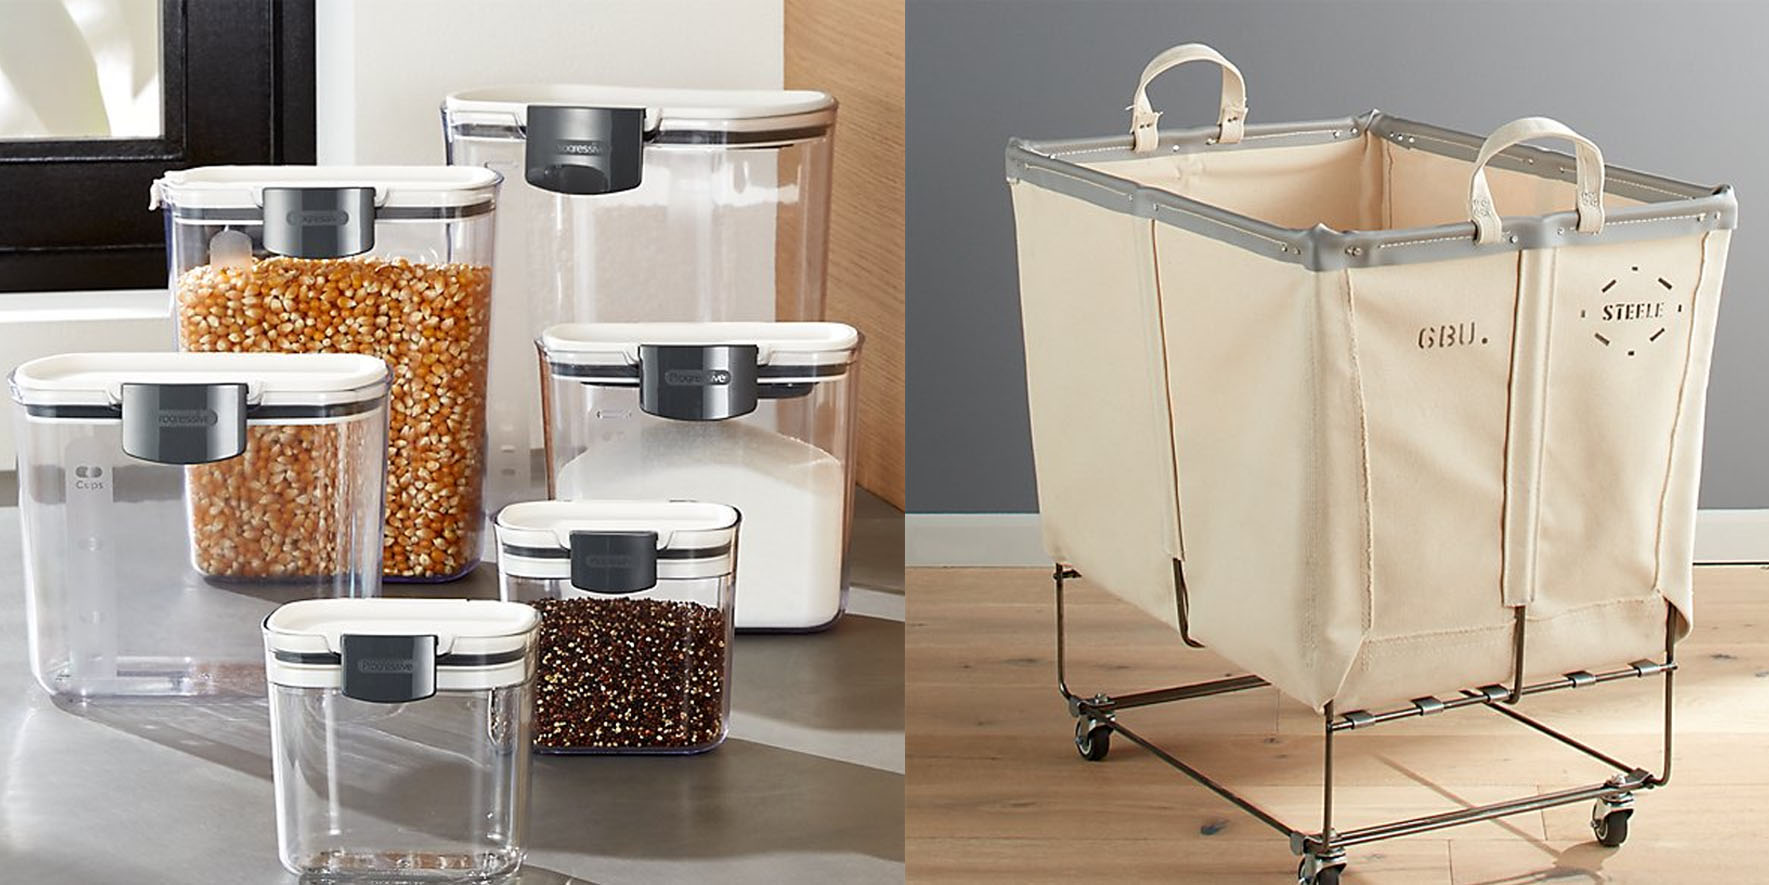 Crate & Barrel Spring Cleaning Event cuts 20% off trash cans, laundry hampers, organizers, more